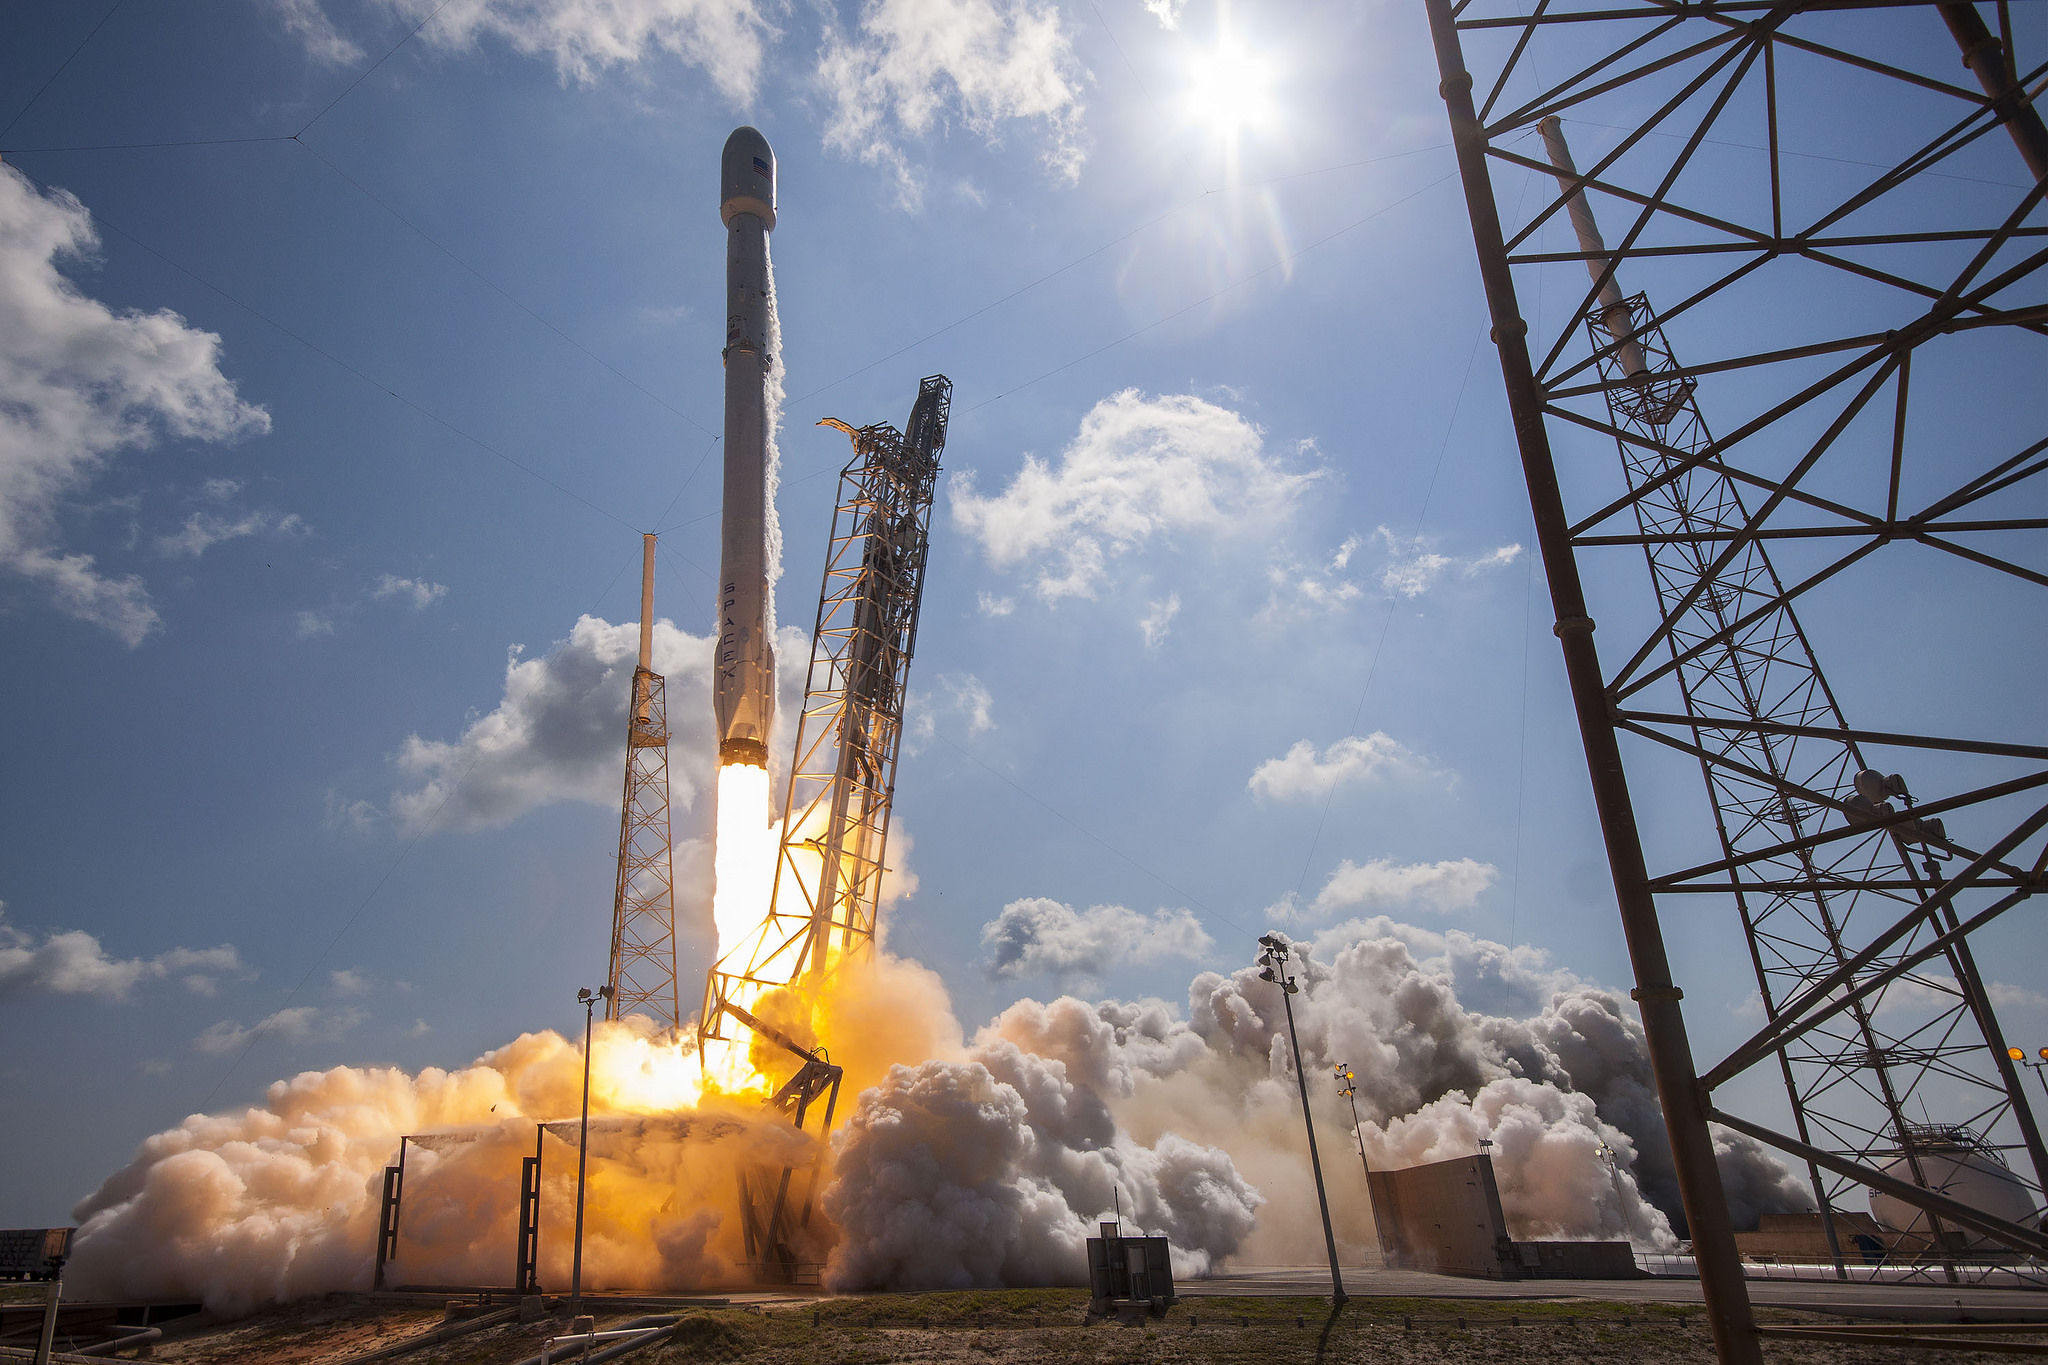 SpaceX's last mission, Eutelsat/ABS, launched on June 15, 2016.